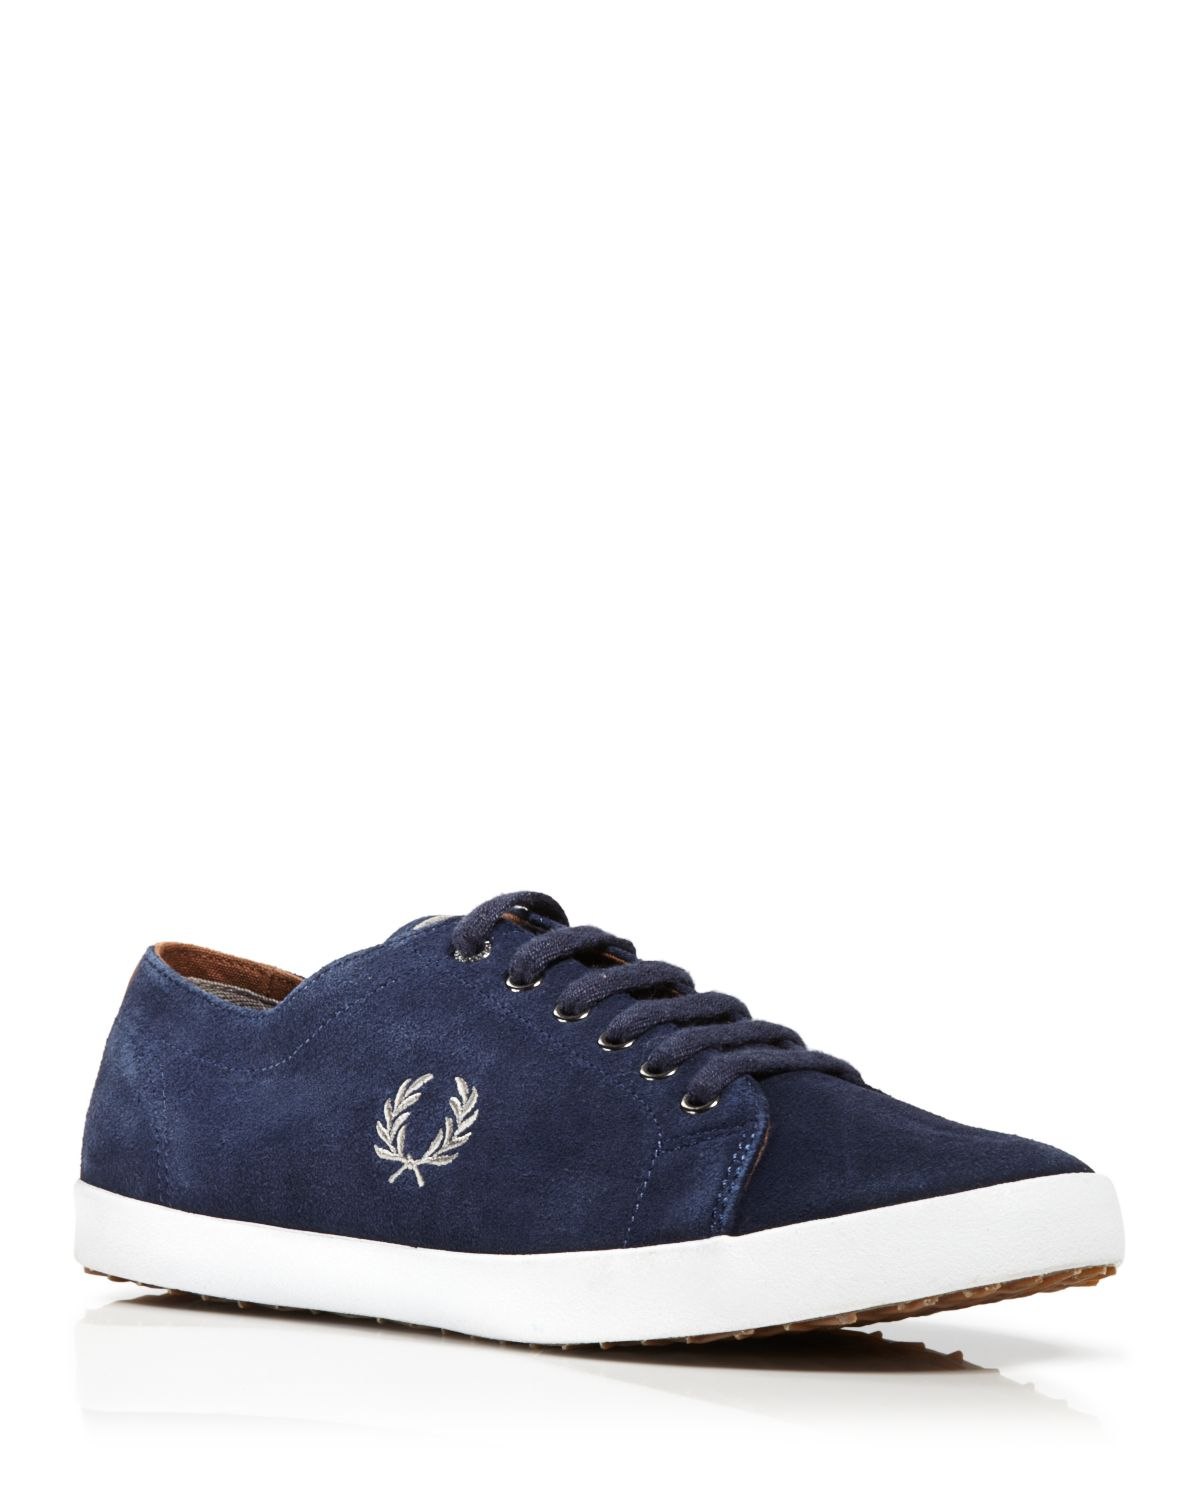 Fred Perry Shoes Kingston Blue